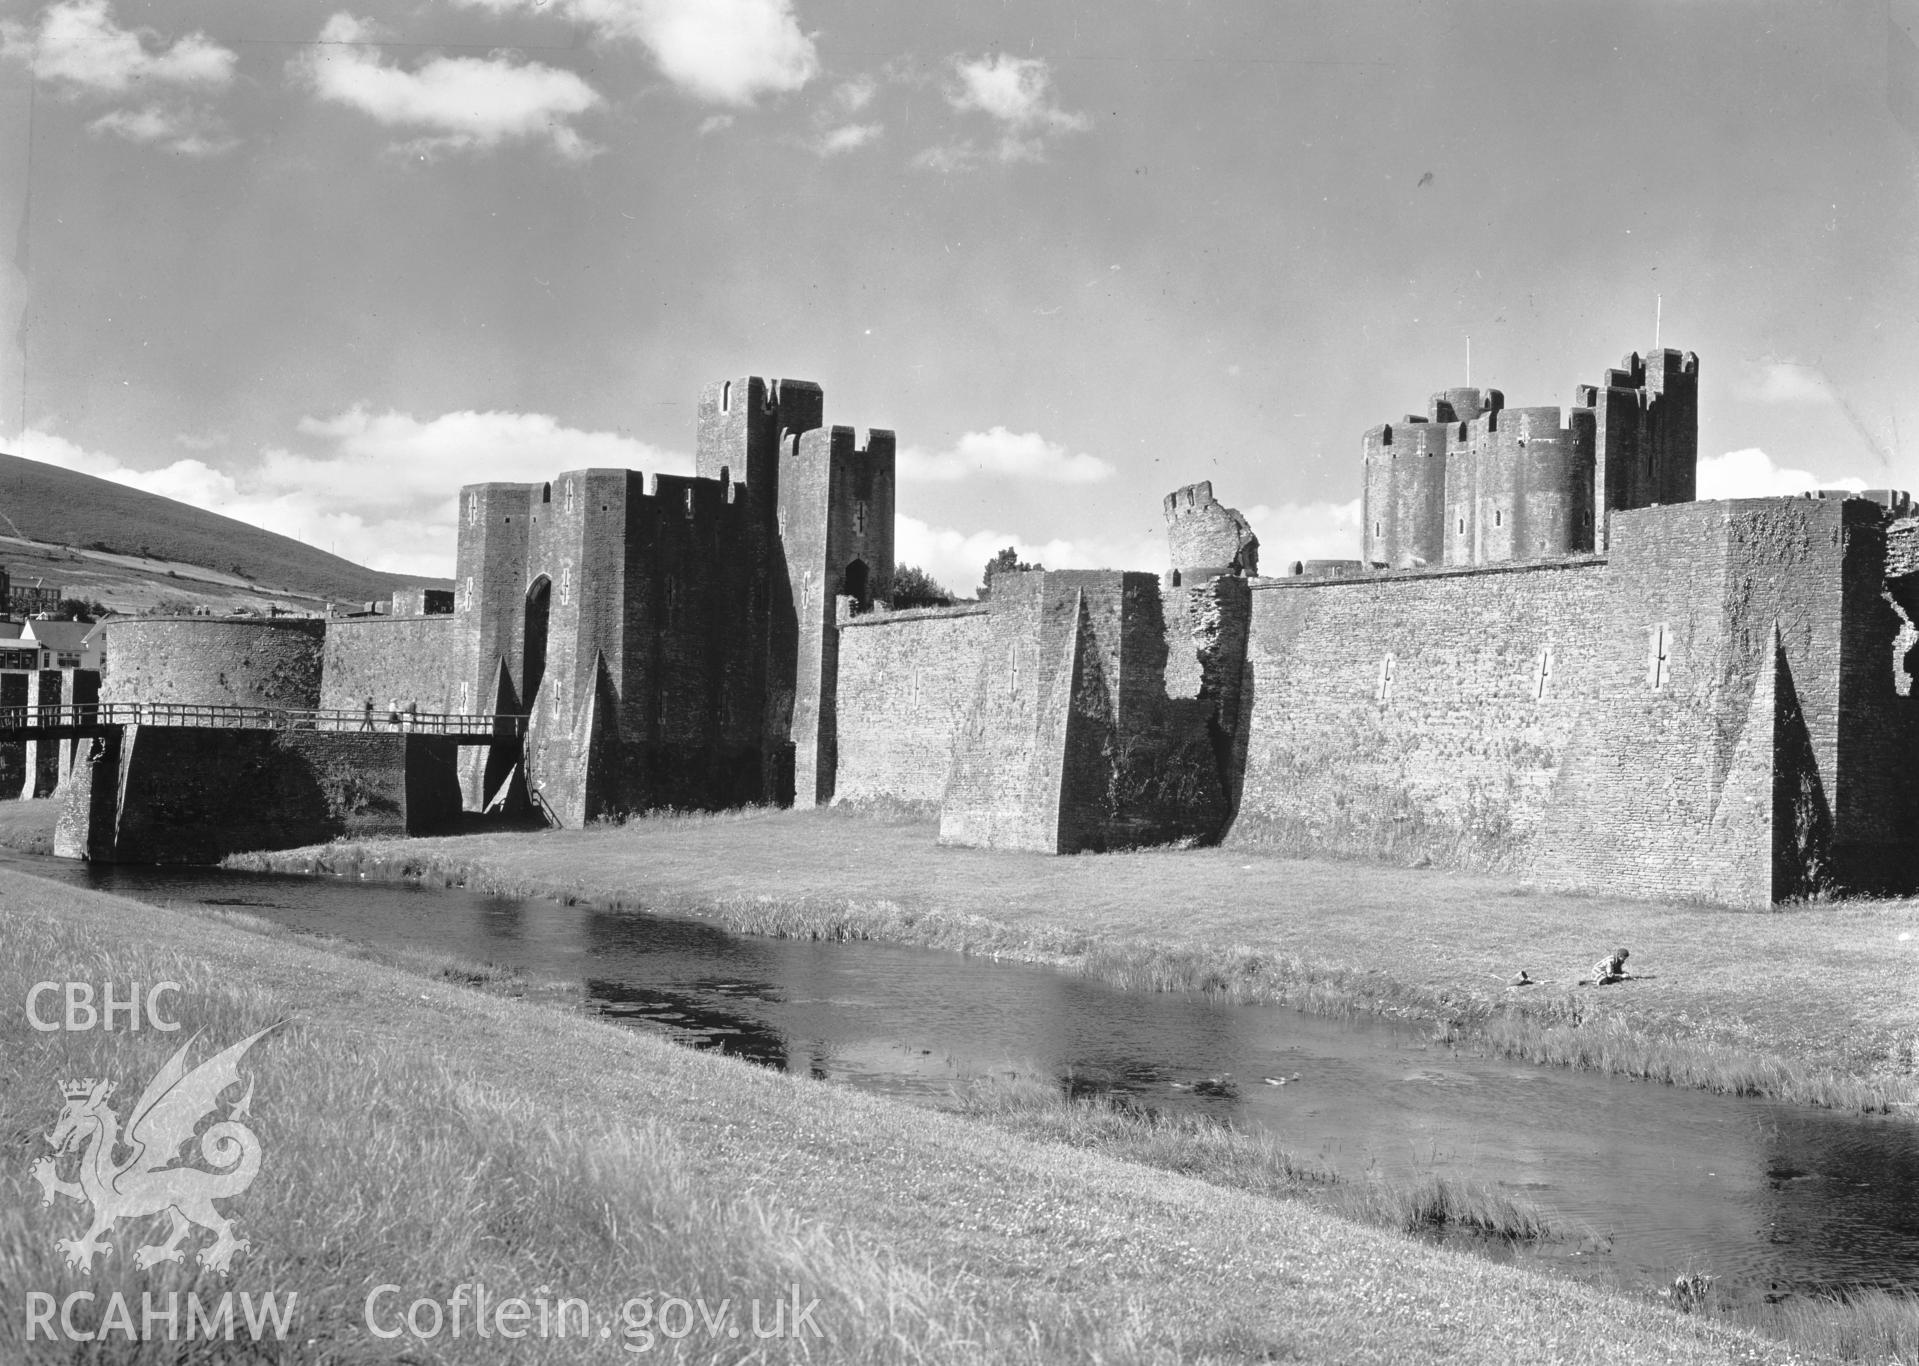 D.O.E photograph of Caerphilly Castle.